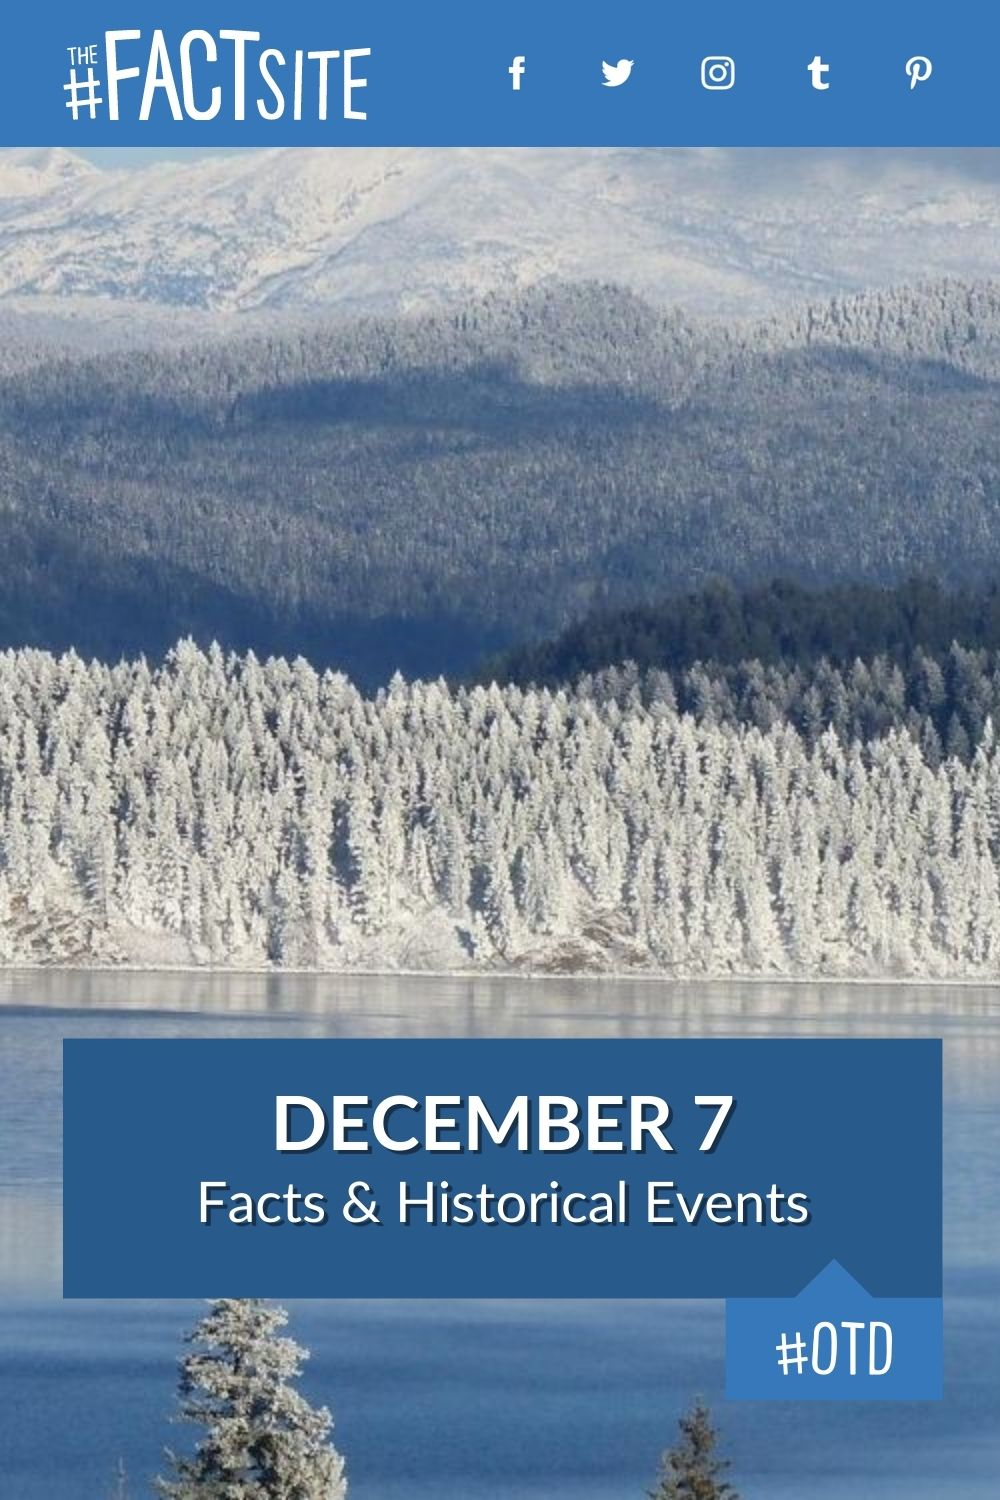 Facts & Historic Events That Happened on December 7